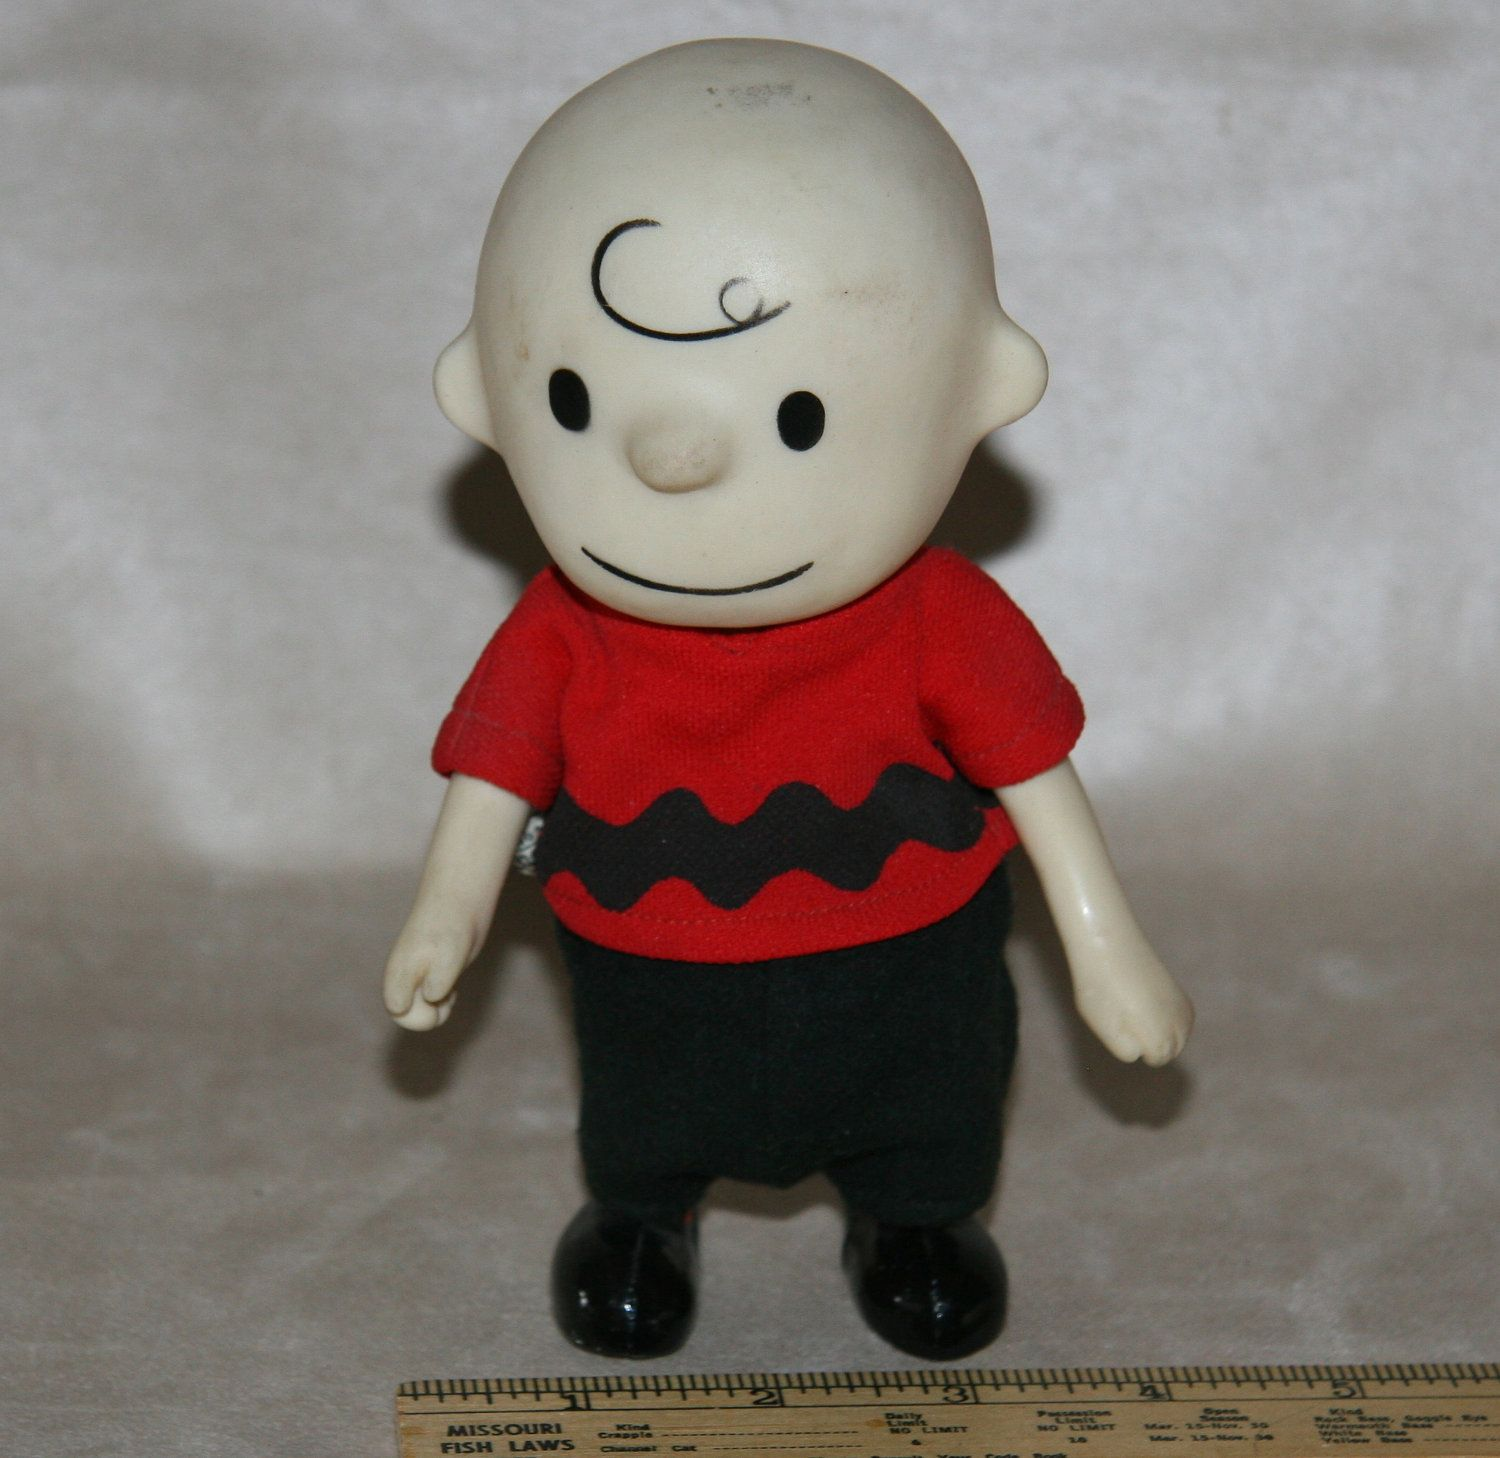 1960s 1966 Charlie Brown Charles Schulz Peanuts Pocket Doll United Features Syndicate San Francisco Via Etsy Vintage Toys Toy Collection Cool Toys